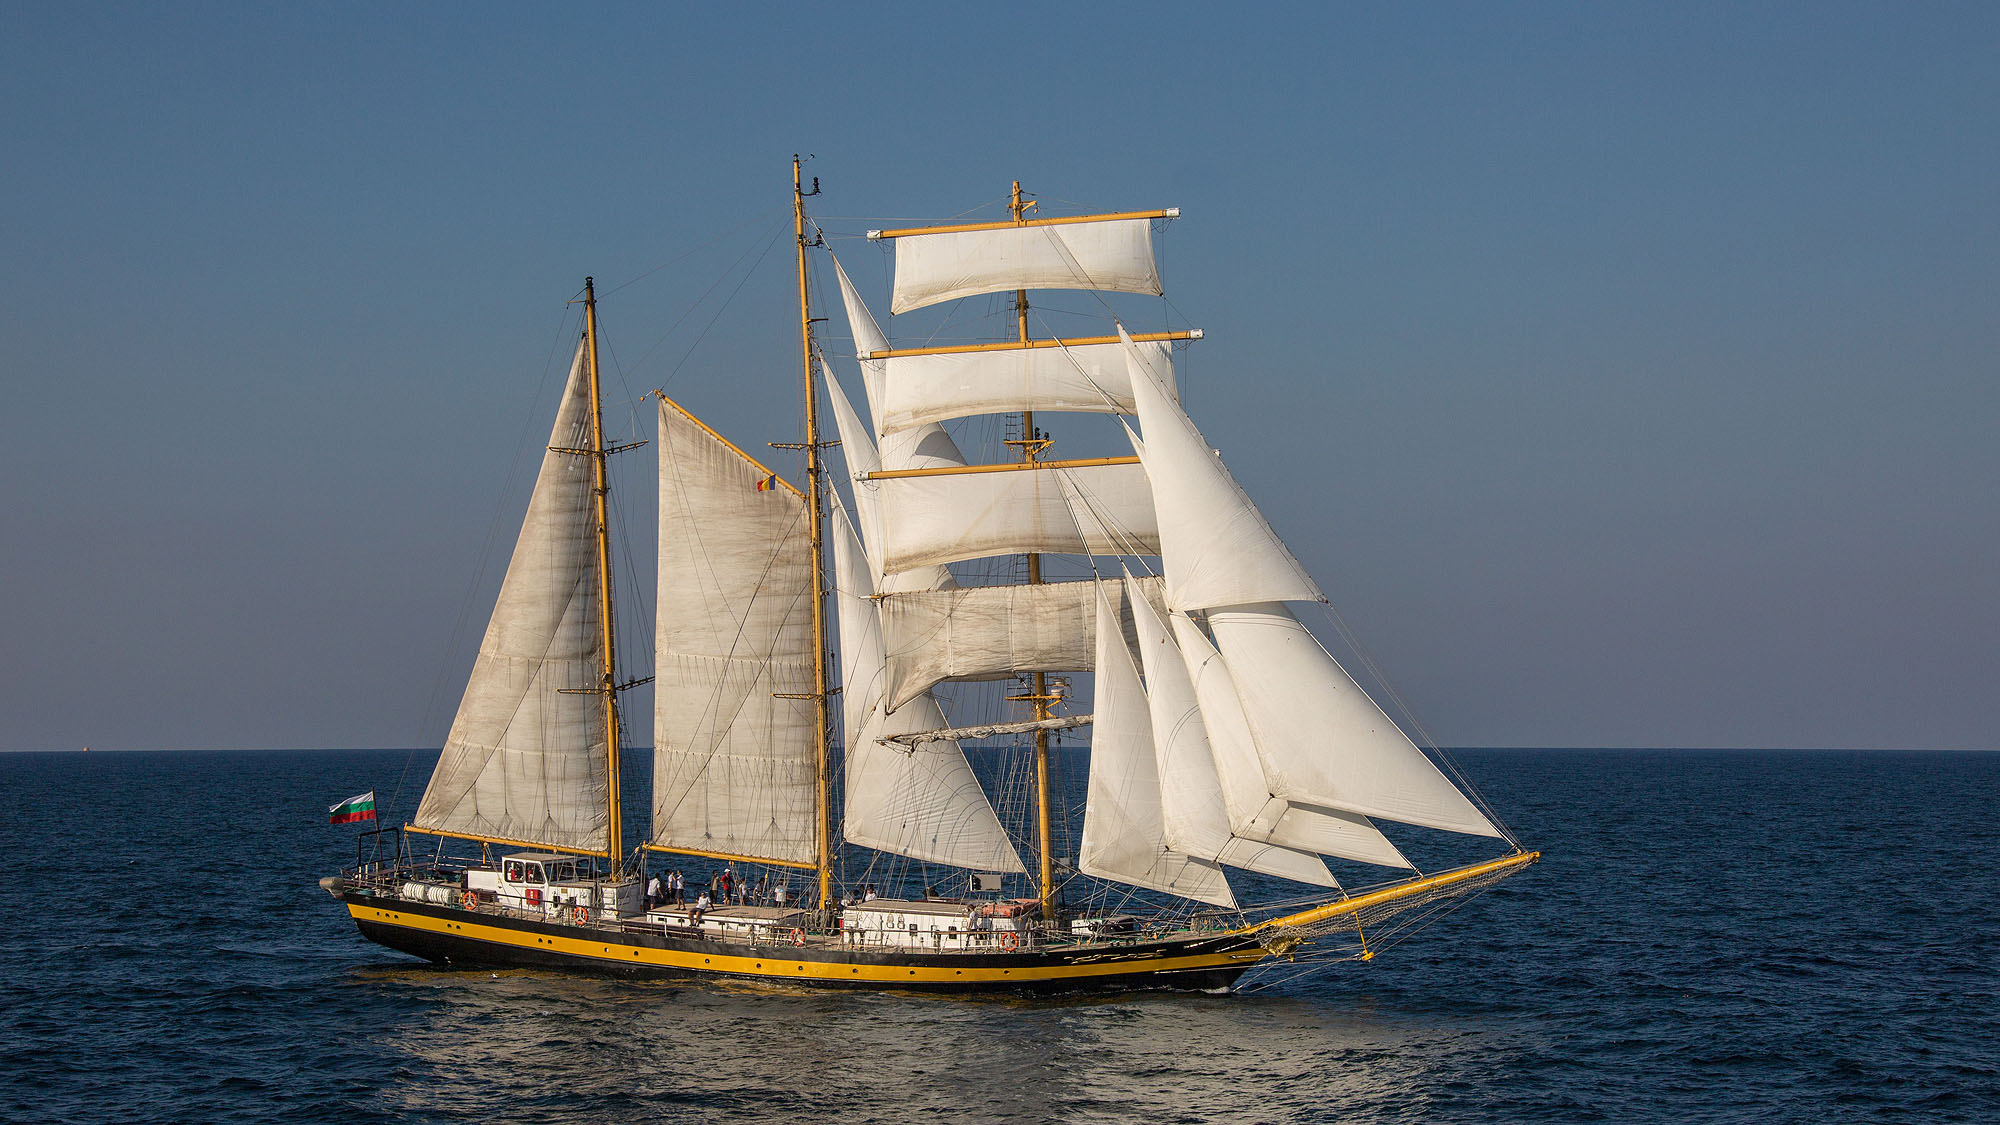 021 royal-helena_©_top-sail_valery-vasilevskyaaa